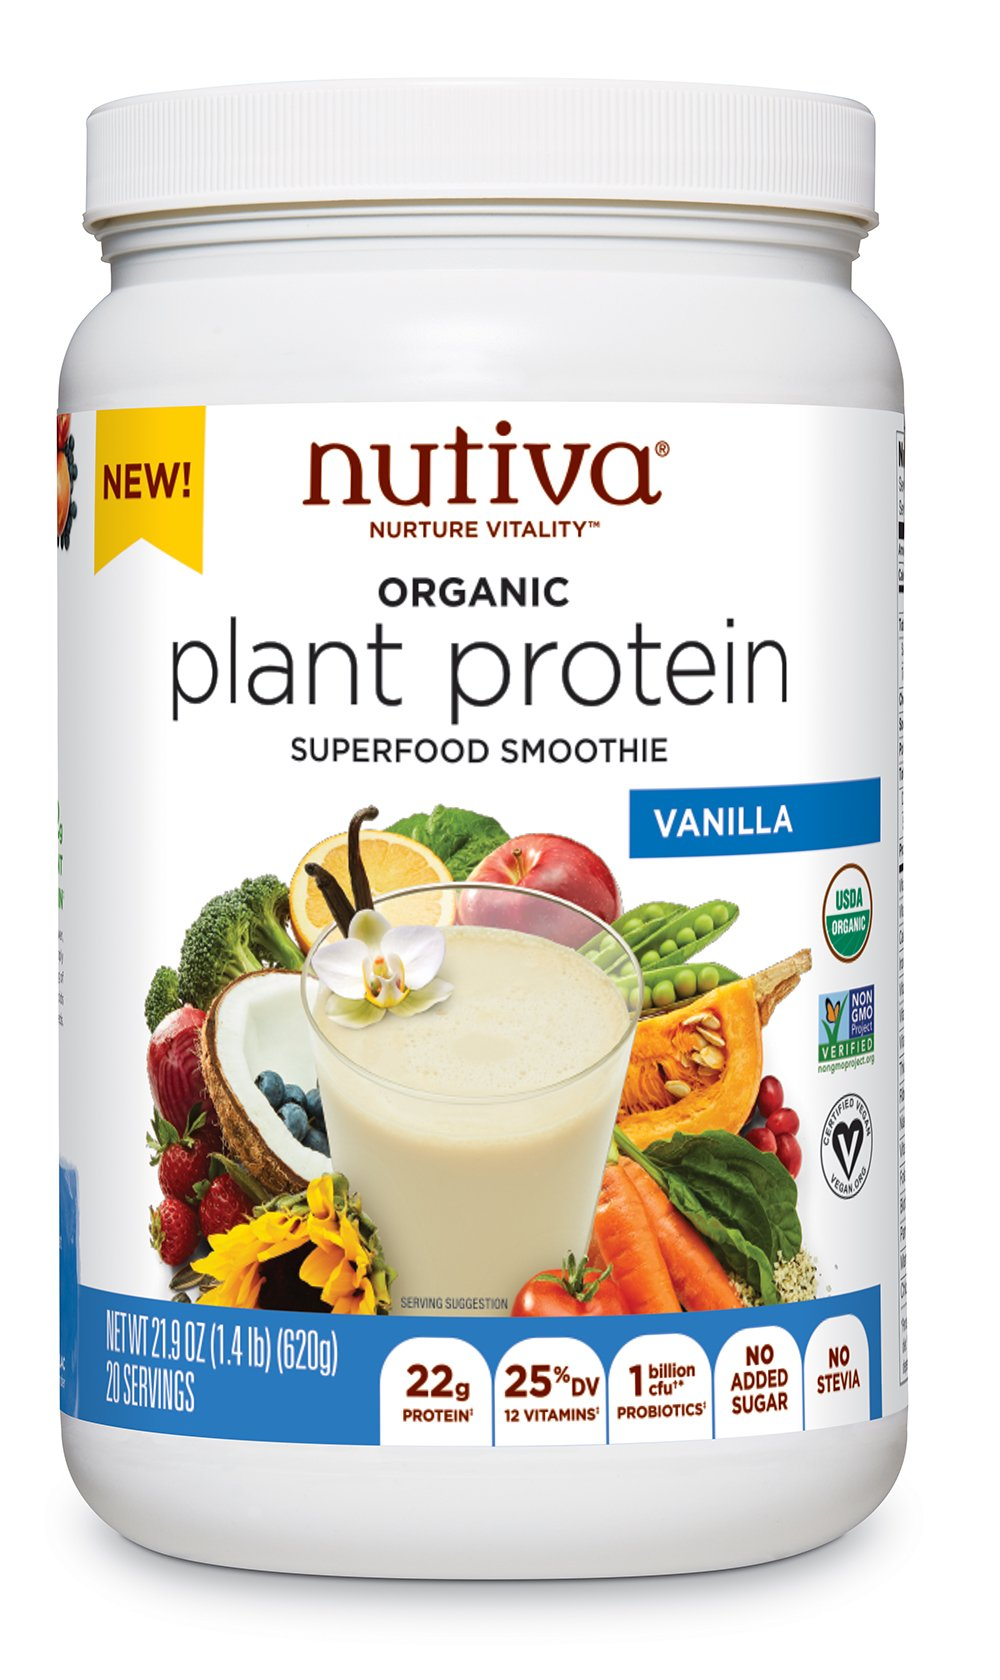 Nutiva Plant Protein Superfood for Shakes and Smoothies, Vanilla, 1.4-pound by Nutiva